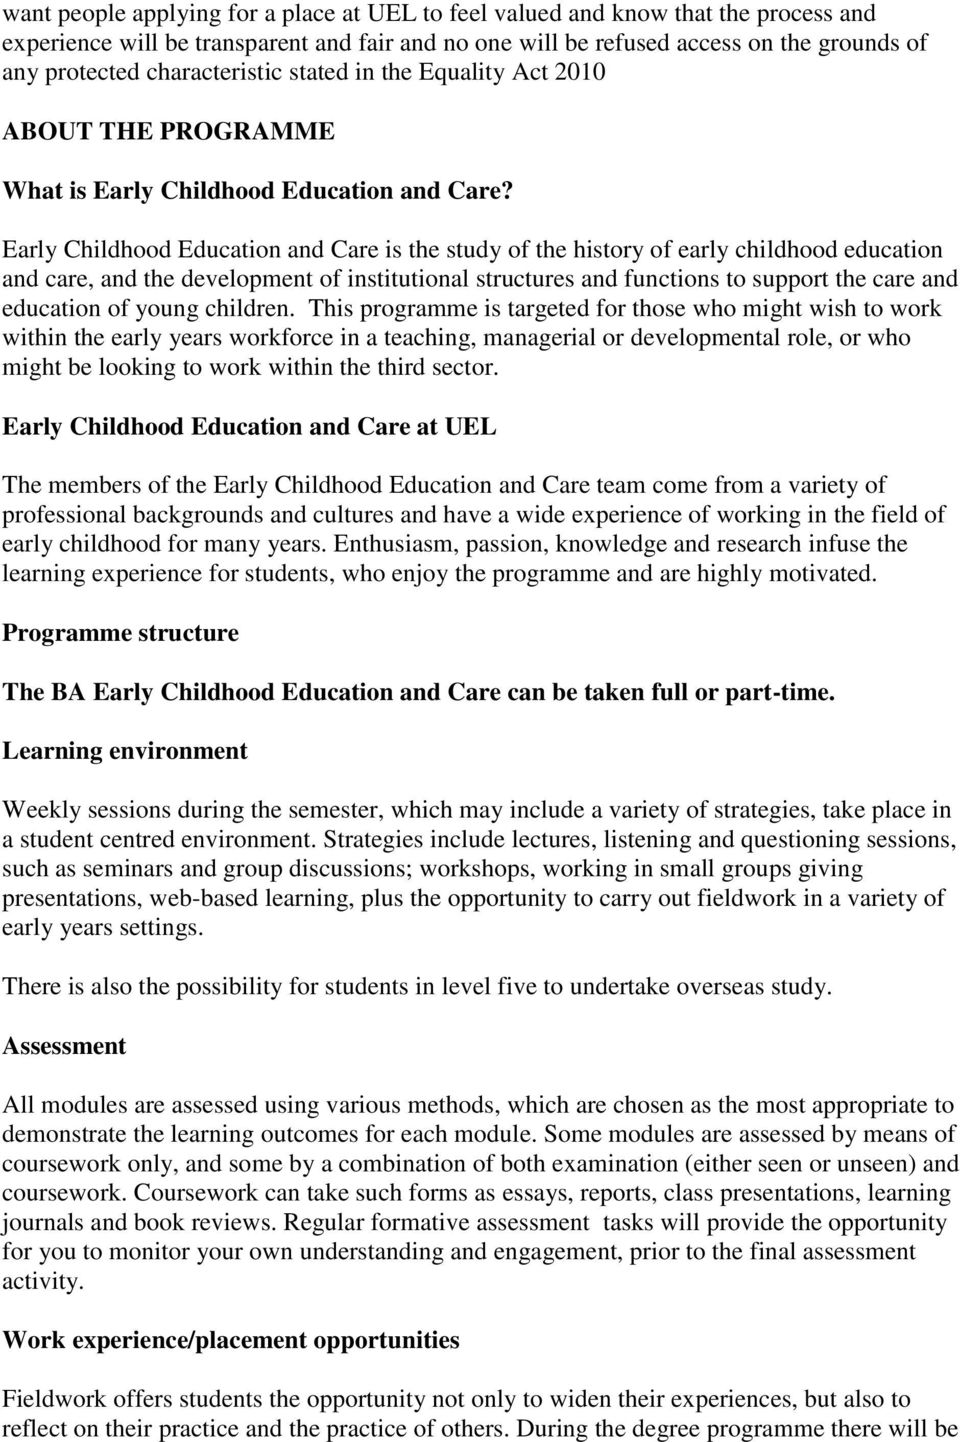 Early Childhood Education and Care is the study of the history of early childhood education and care, and the development of institutional structures and functions to support the care and education